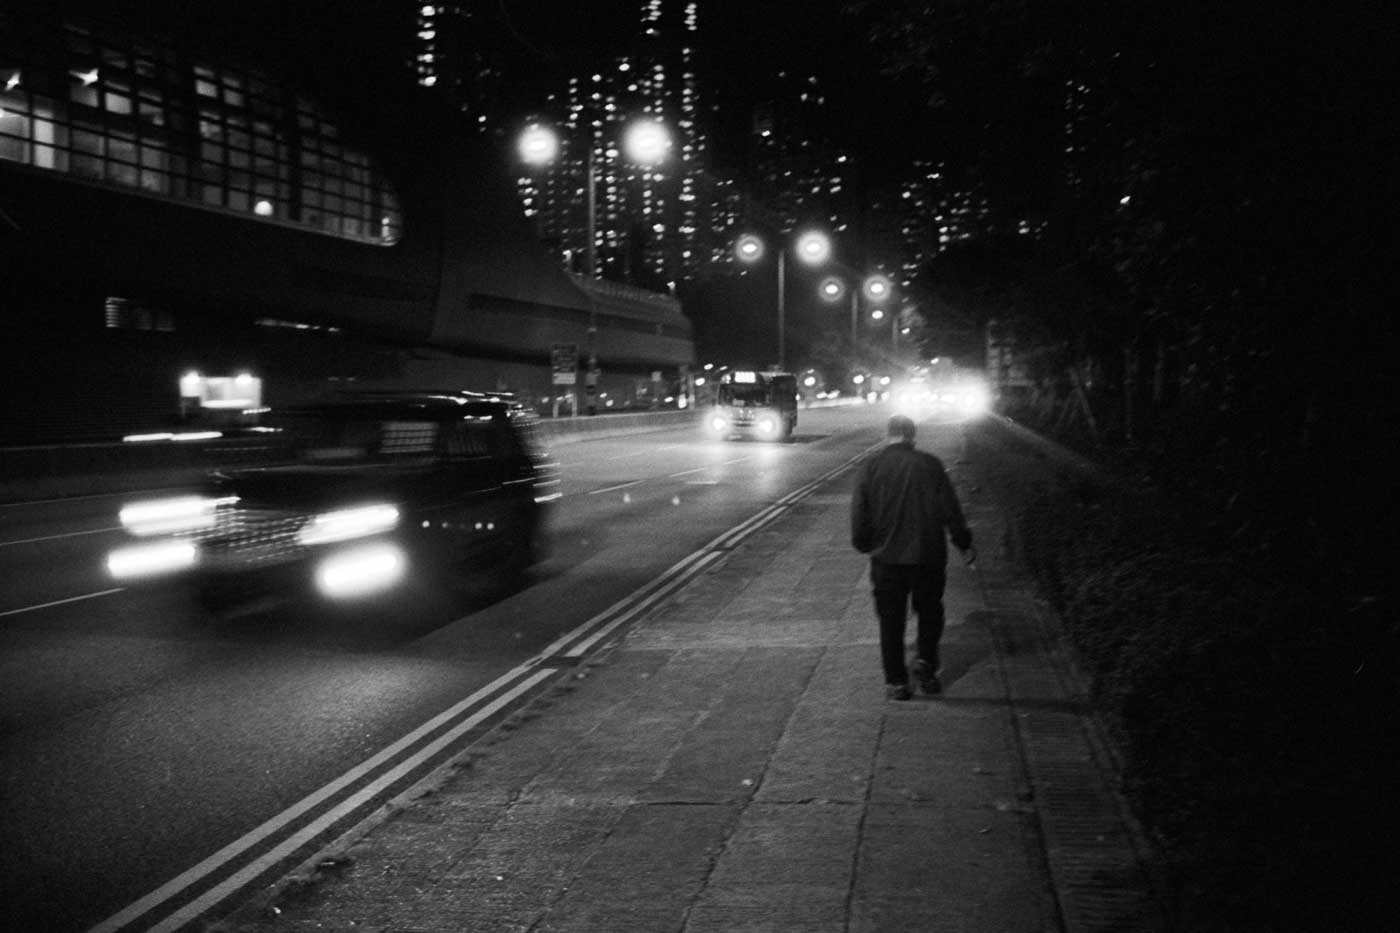 Leica-summicron-35mm-f2-8element-8-element-v1-version1-lens-review-blog-sharing-thoughts-compare-7element-gear-how-performance-kodak-tri-x-400-hk-hong-kong-night-kennedy-town-walk